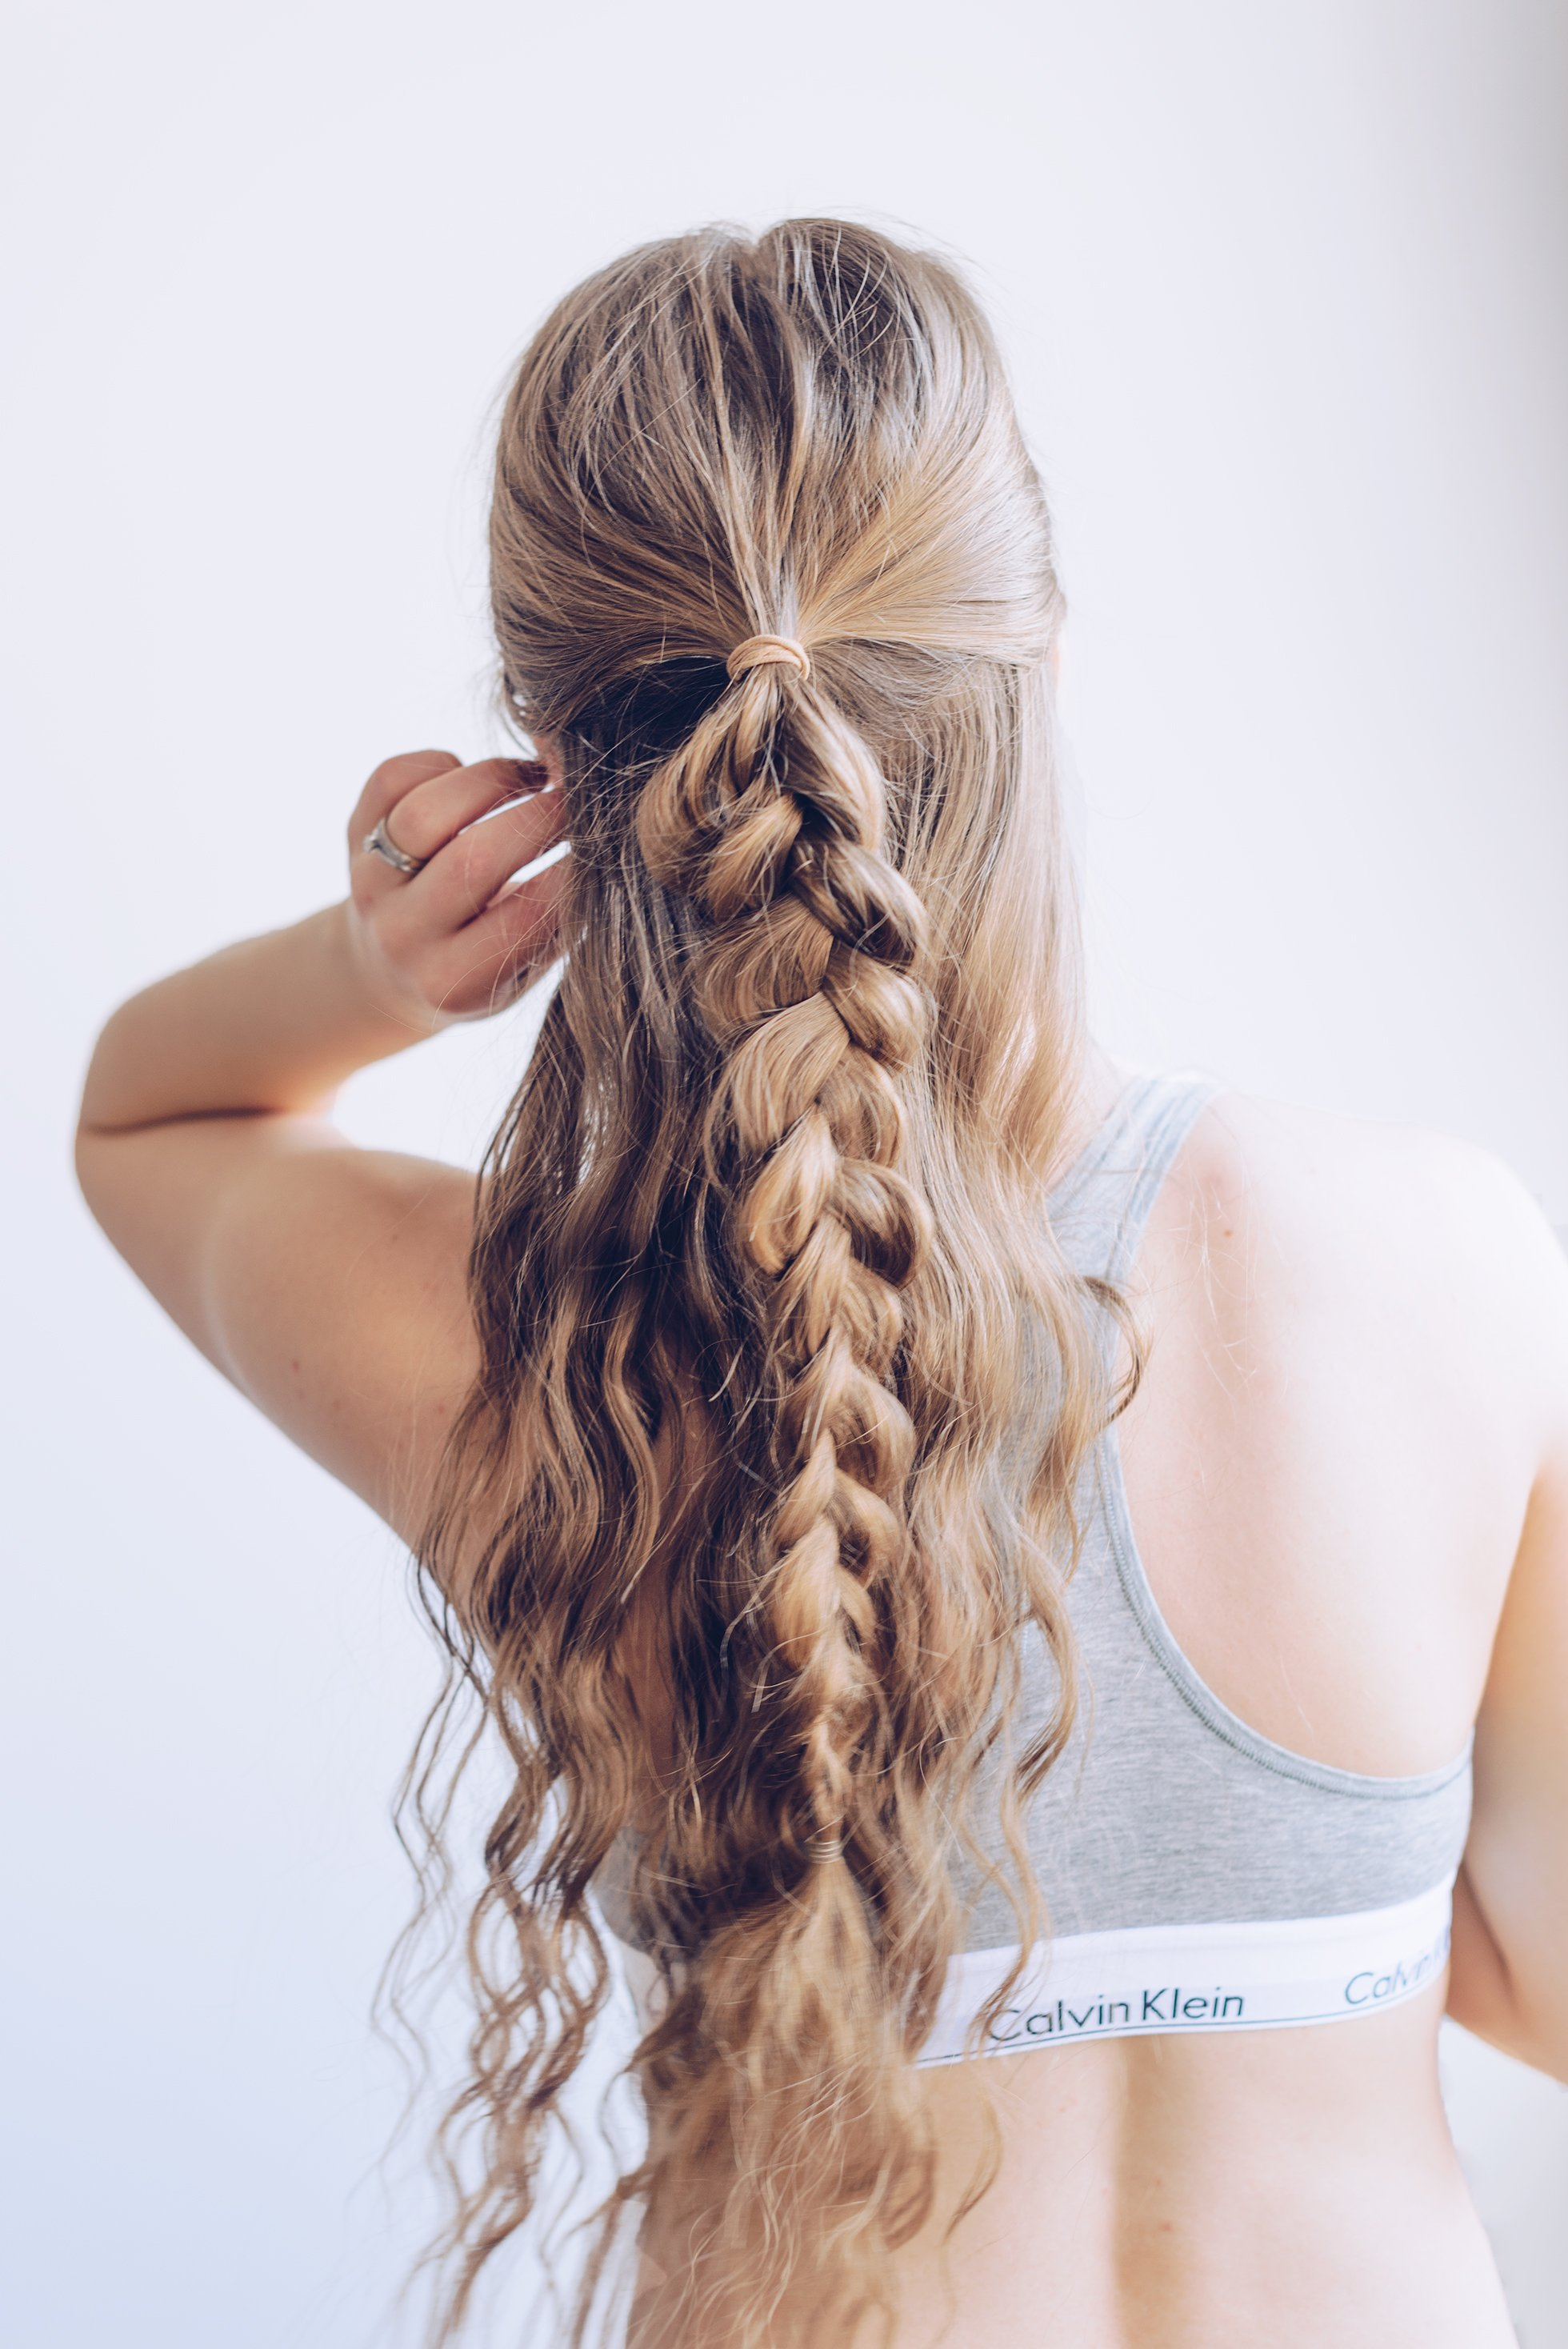 Hair of the day